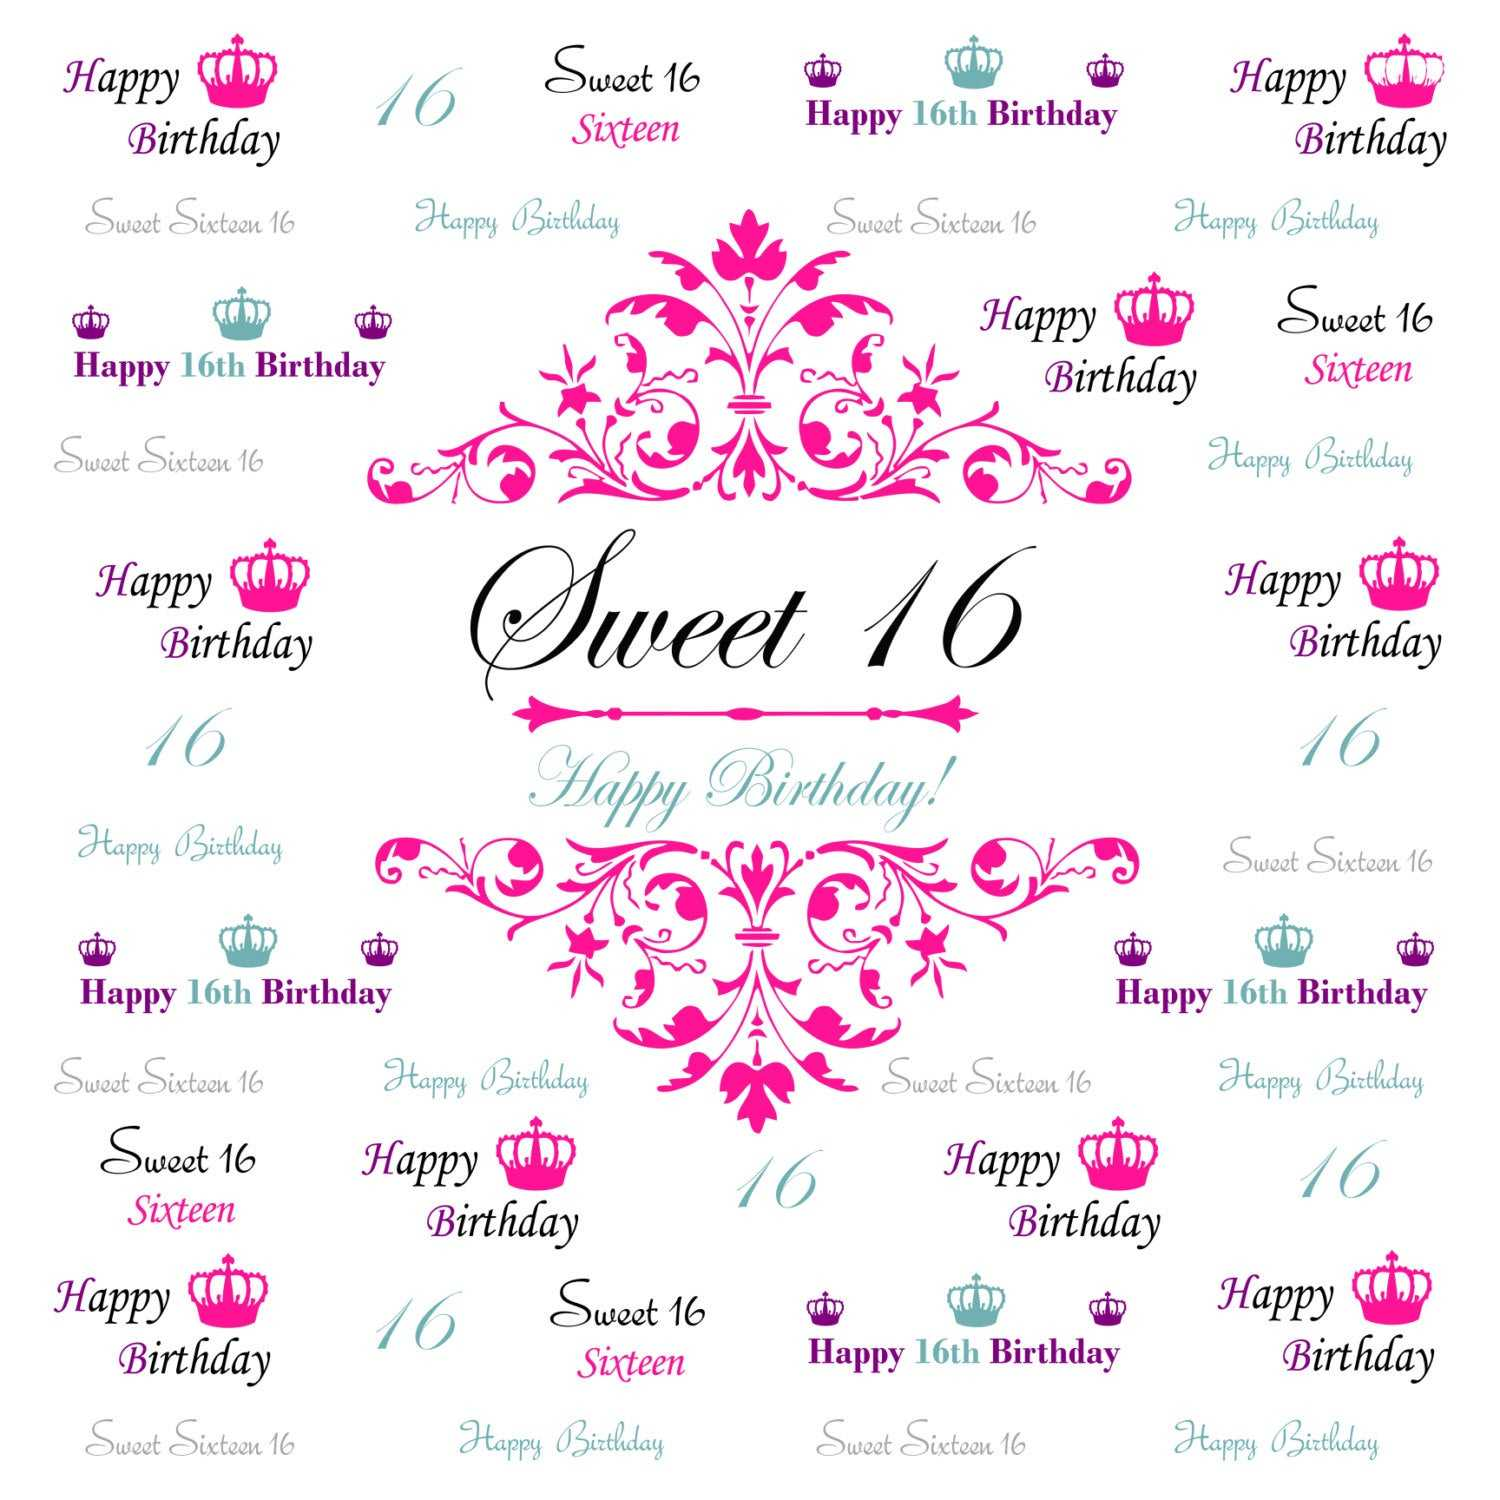 021 Template Ideas Step And Repeat Banner Il Fullxfull Intended For Sweet 16 Banner Template